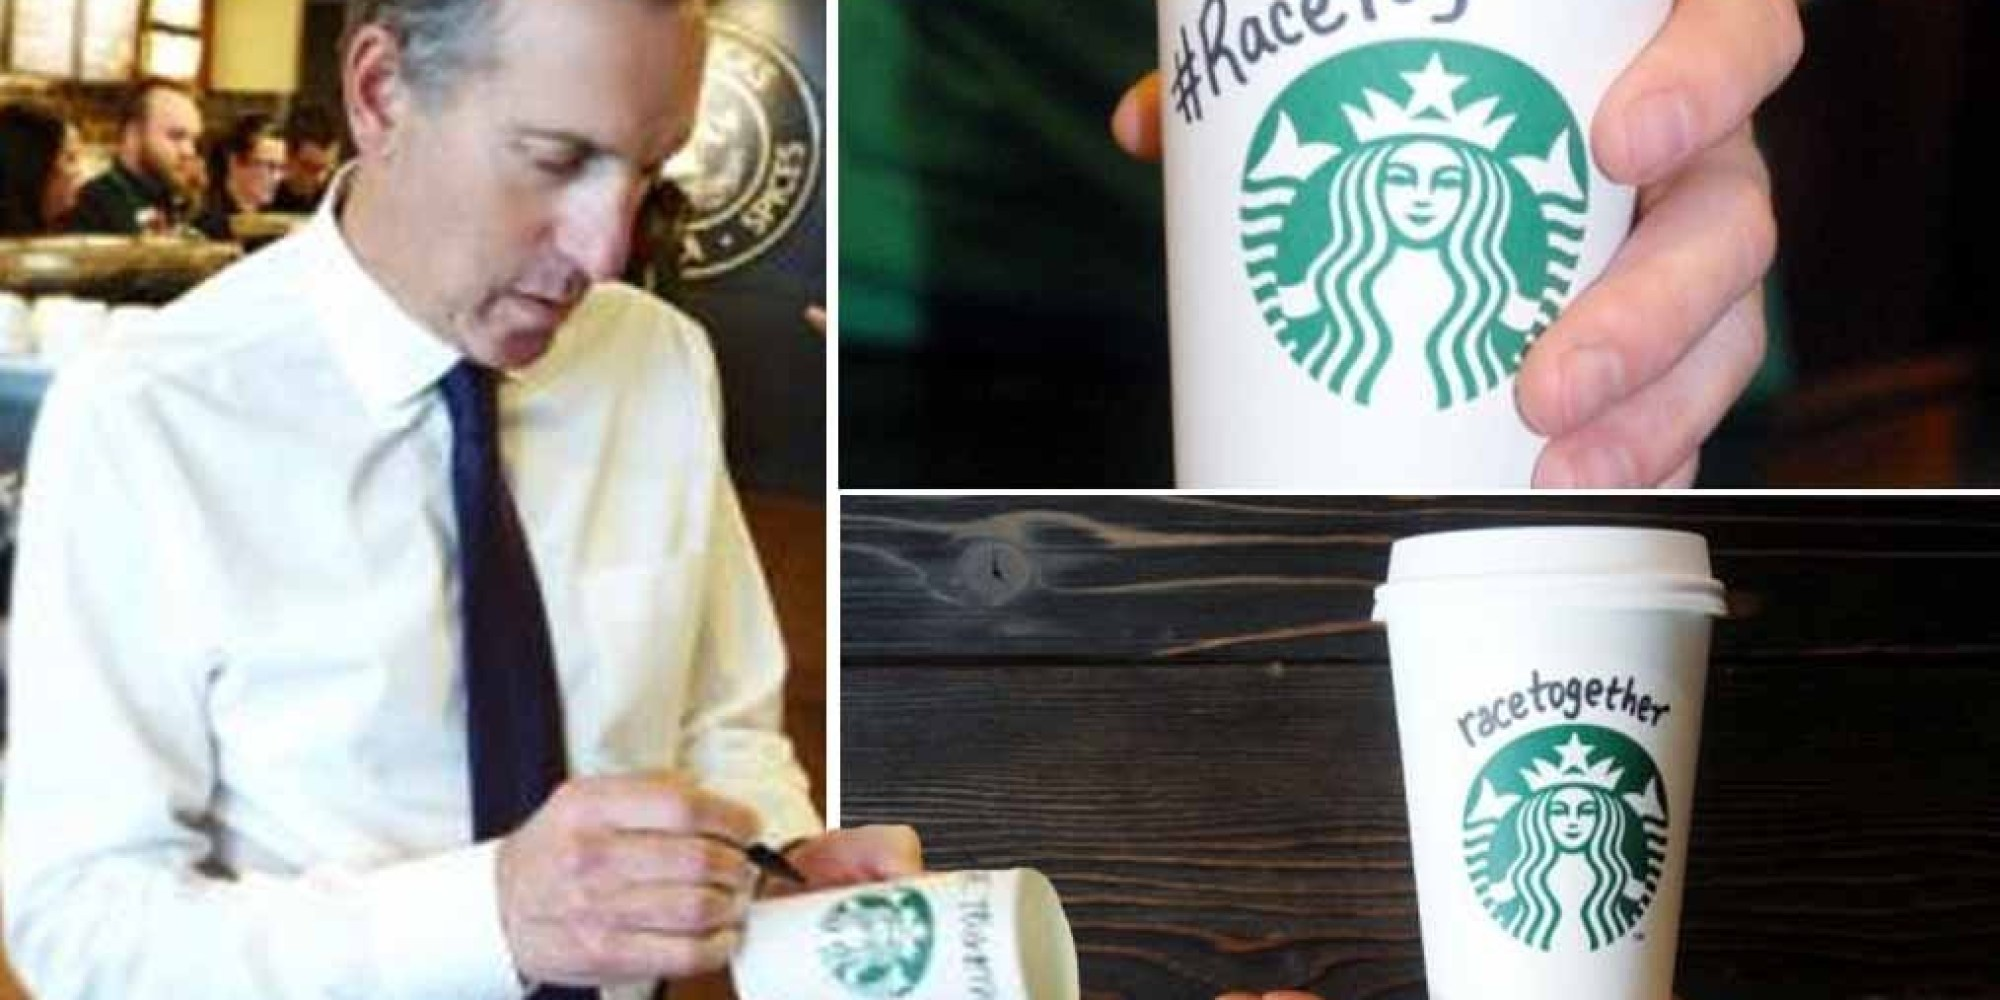 procurement process at starbucks Procurement is the act of obtaining or buying goods and services, especially for business purposes the process includes the preparation and processing of a demand as well as the end receipt and.